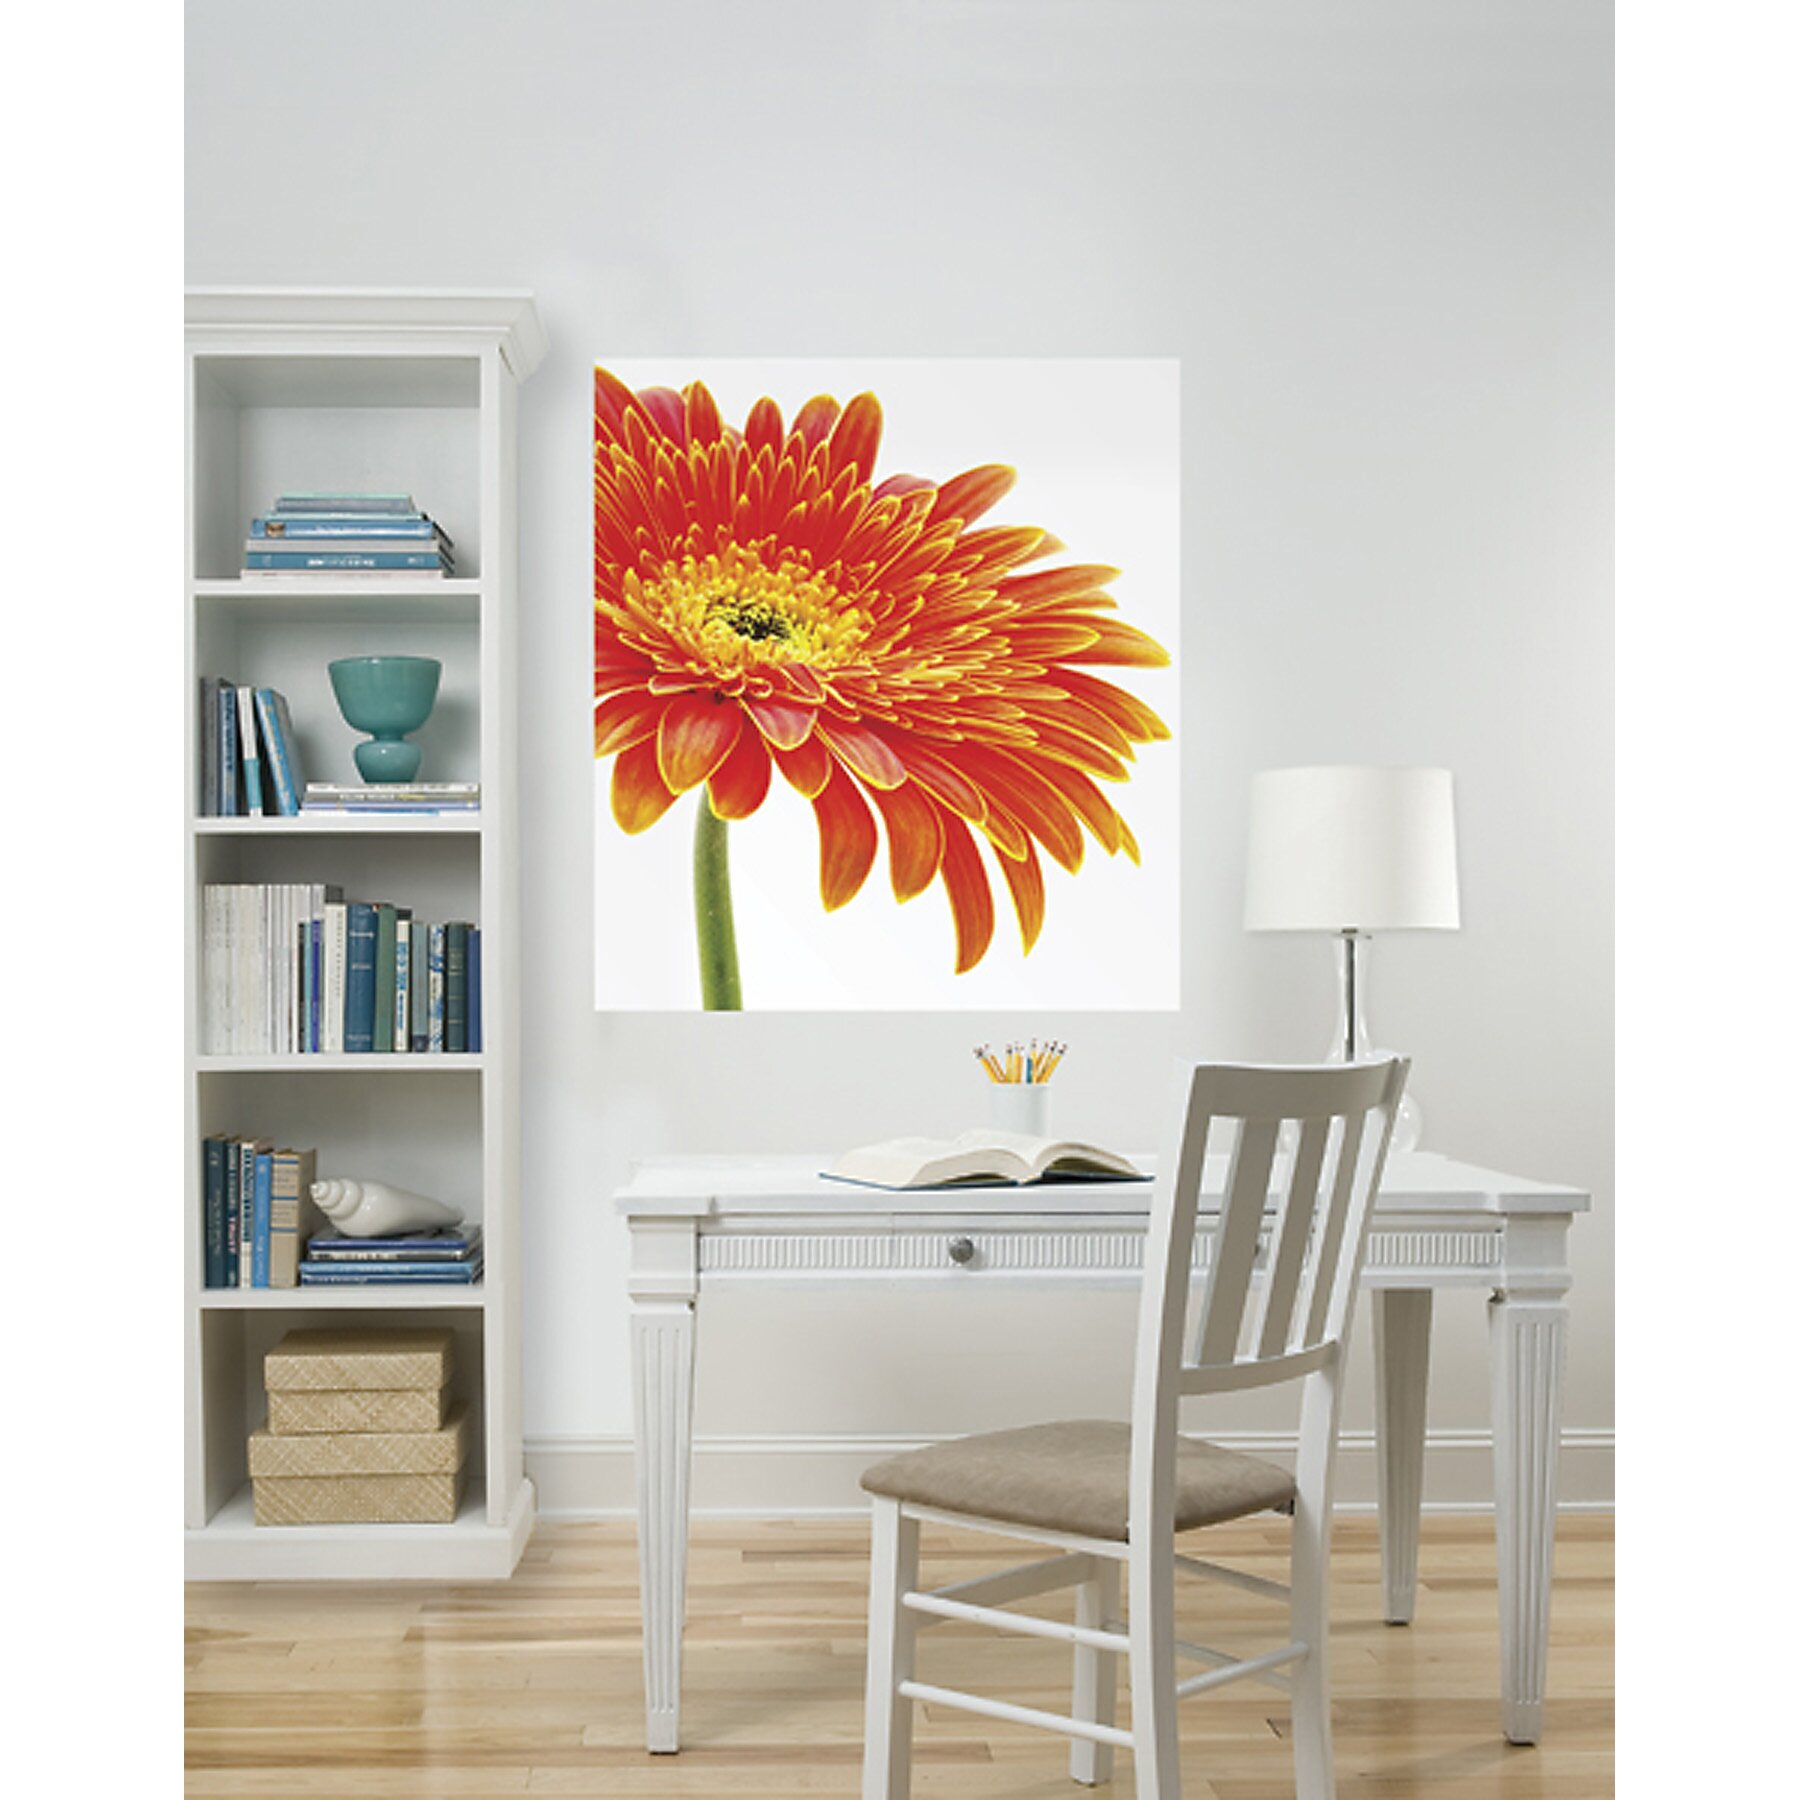 Brewster home fashions wallpops art kits daisy for Daisy fuentes wall mural